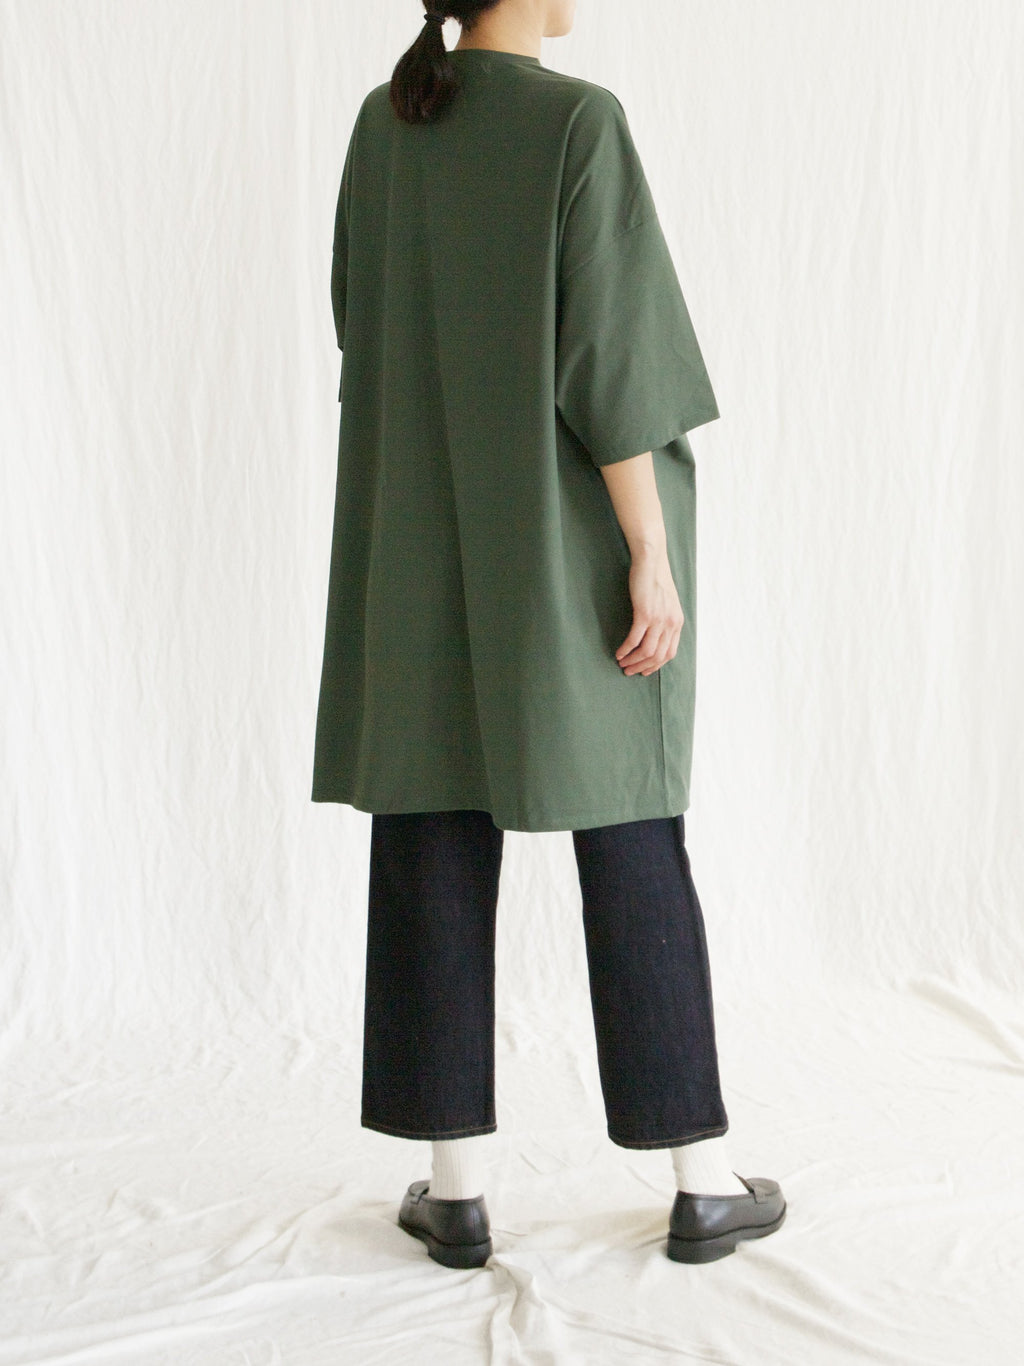 Namu Shop - Veritecoeur Oversized T-Shirt Dress - Green